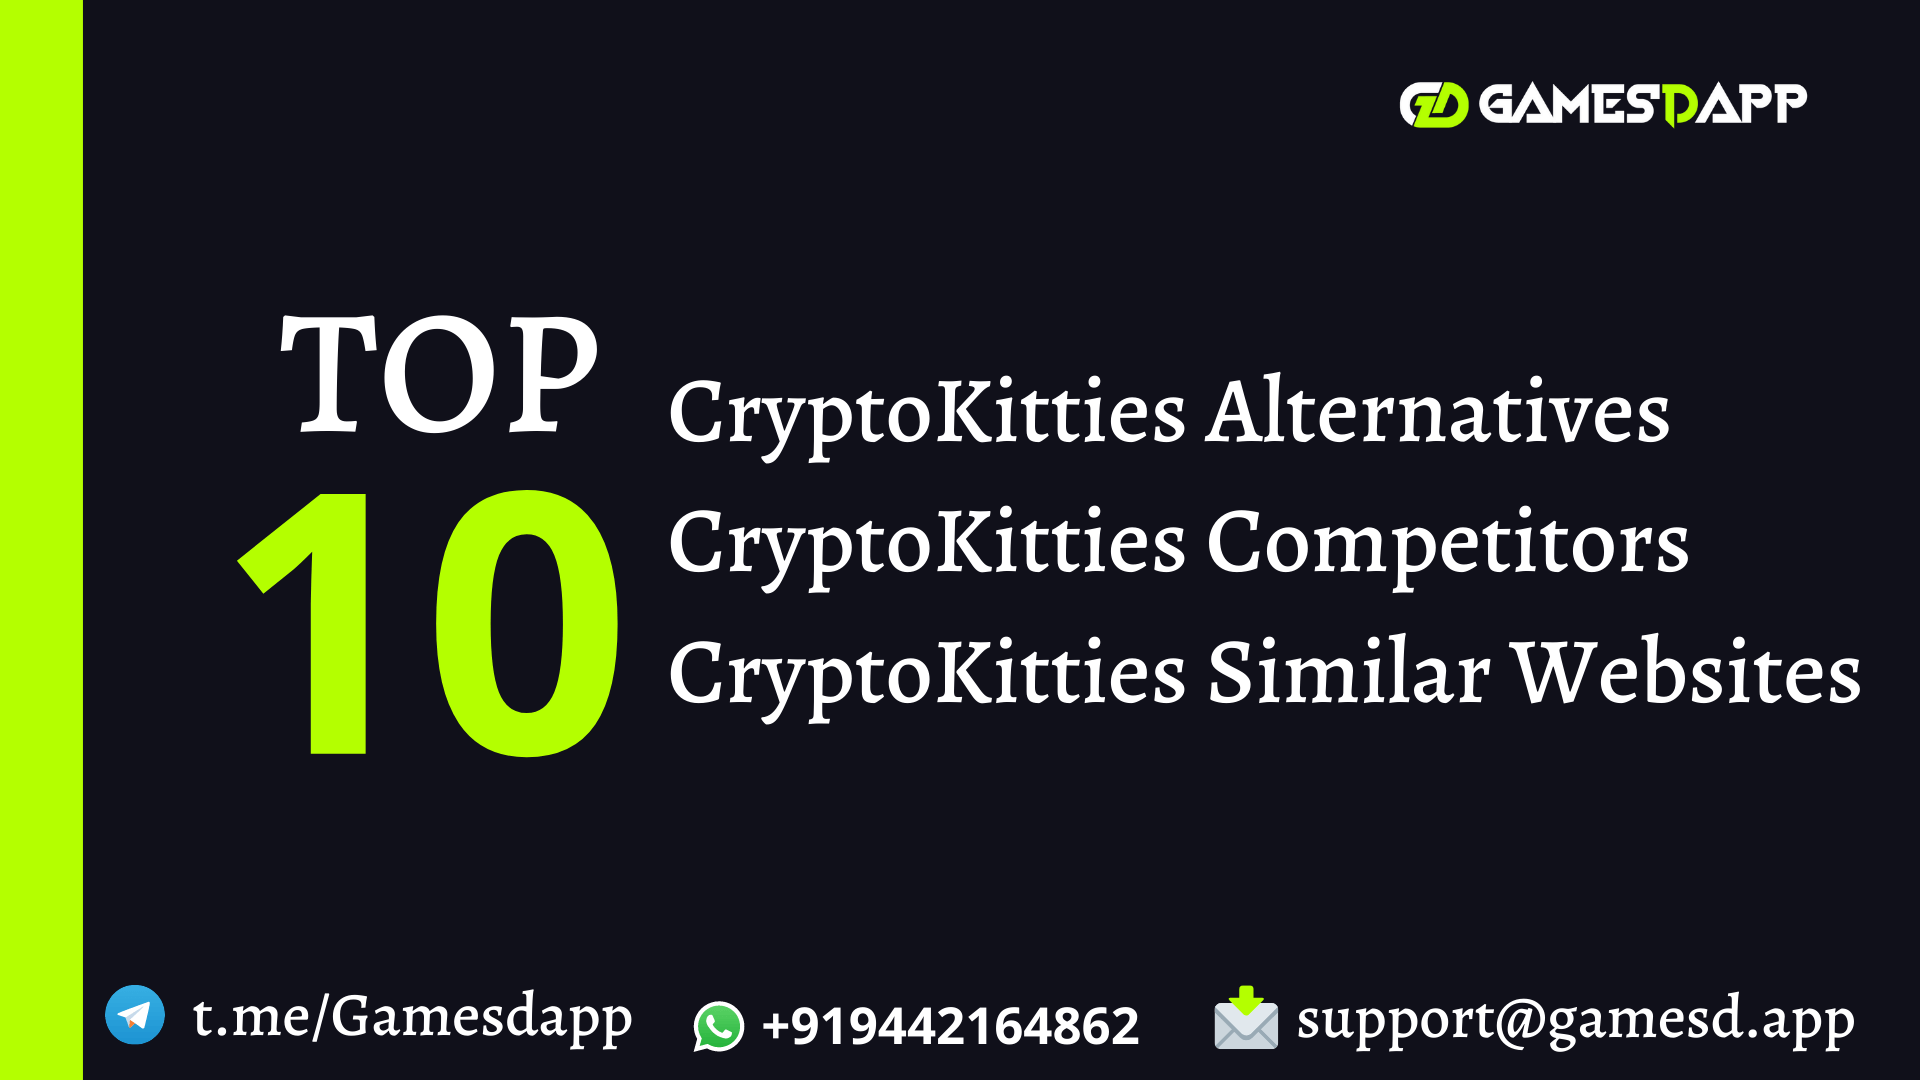 Top 10 CryptoKitties Competitors and Alternatives You Need to Know in 2021